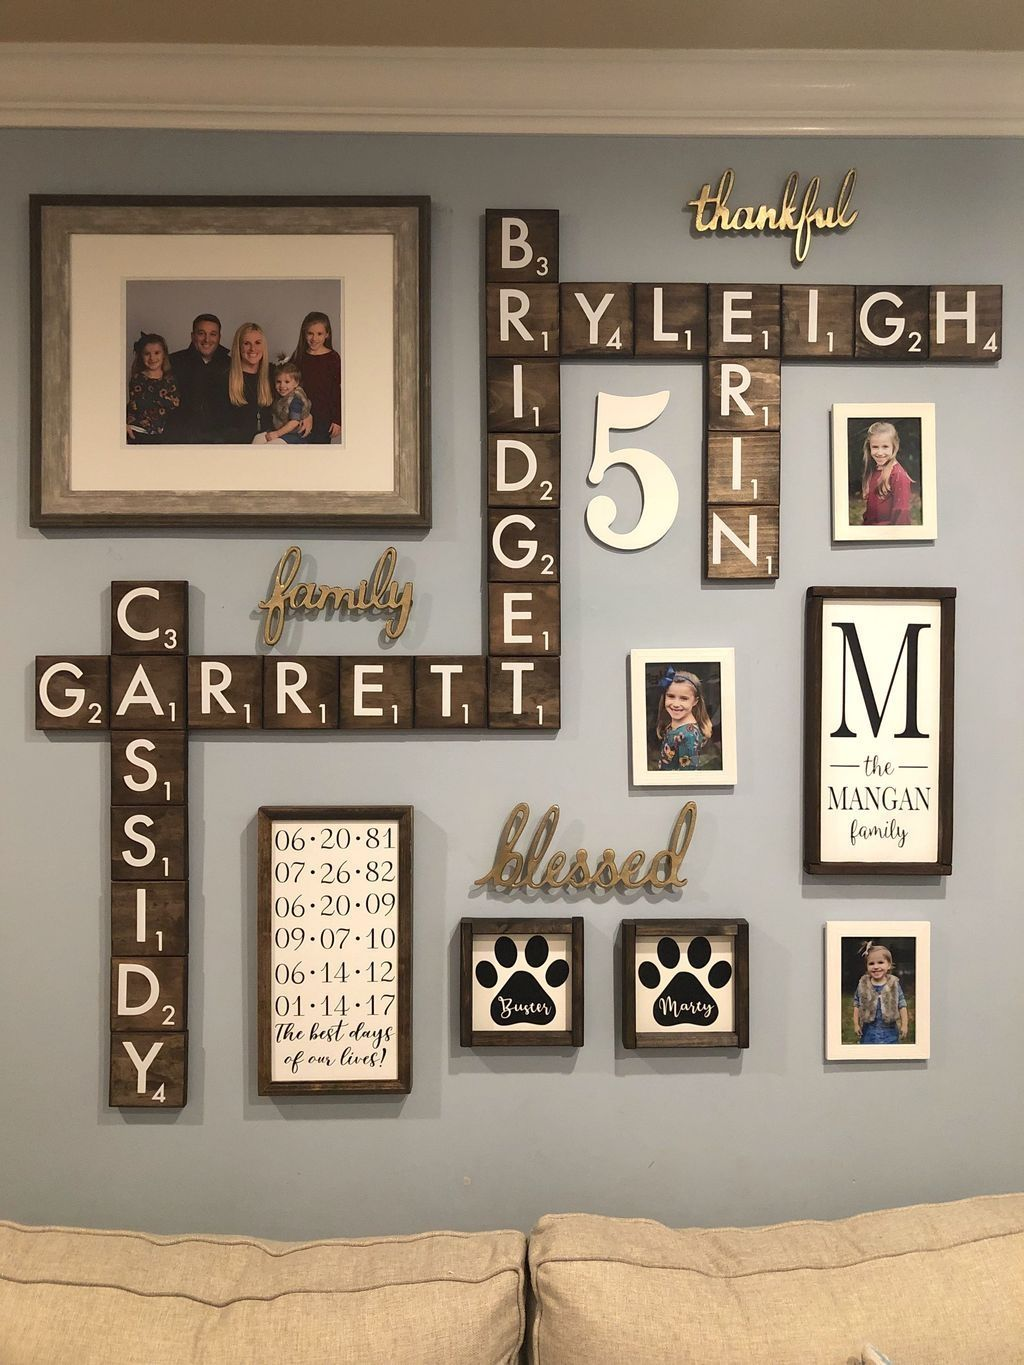 Cool 20 Trendy Living Room Wall Gallery Design Ideas In 2020 Family Wall Decor Family Pictures On Wall Decor Living room letters crossword